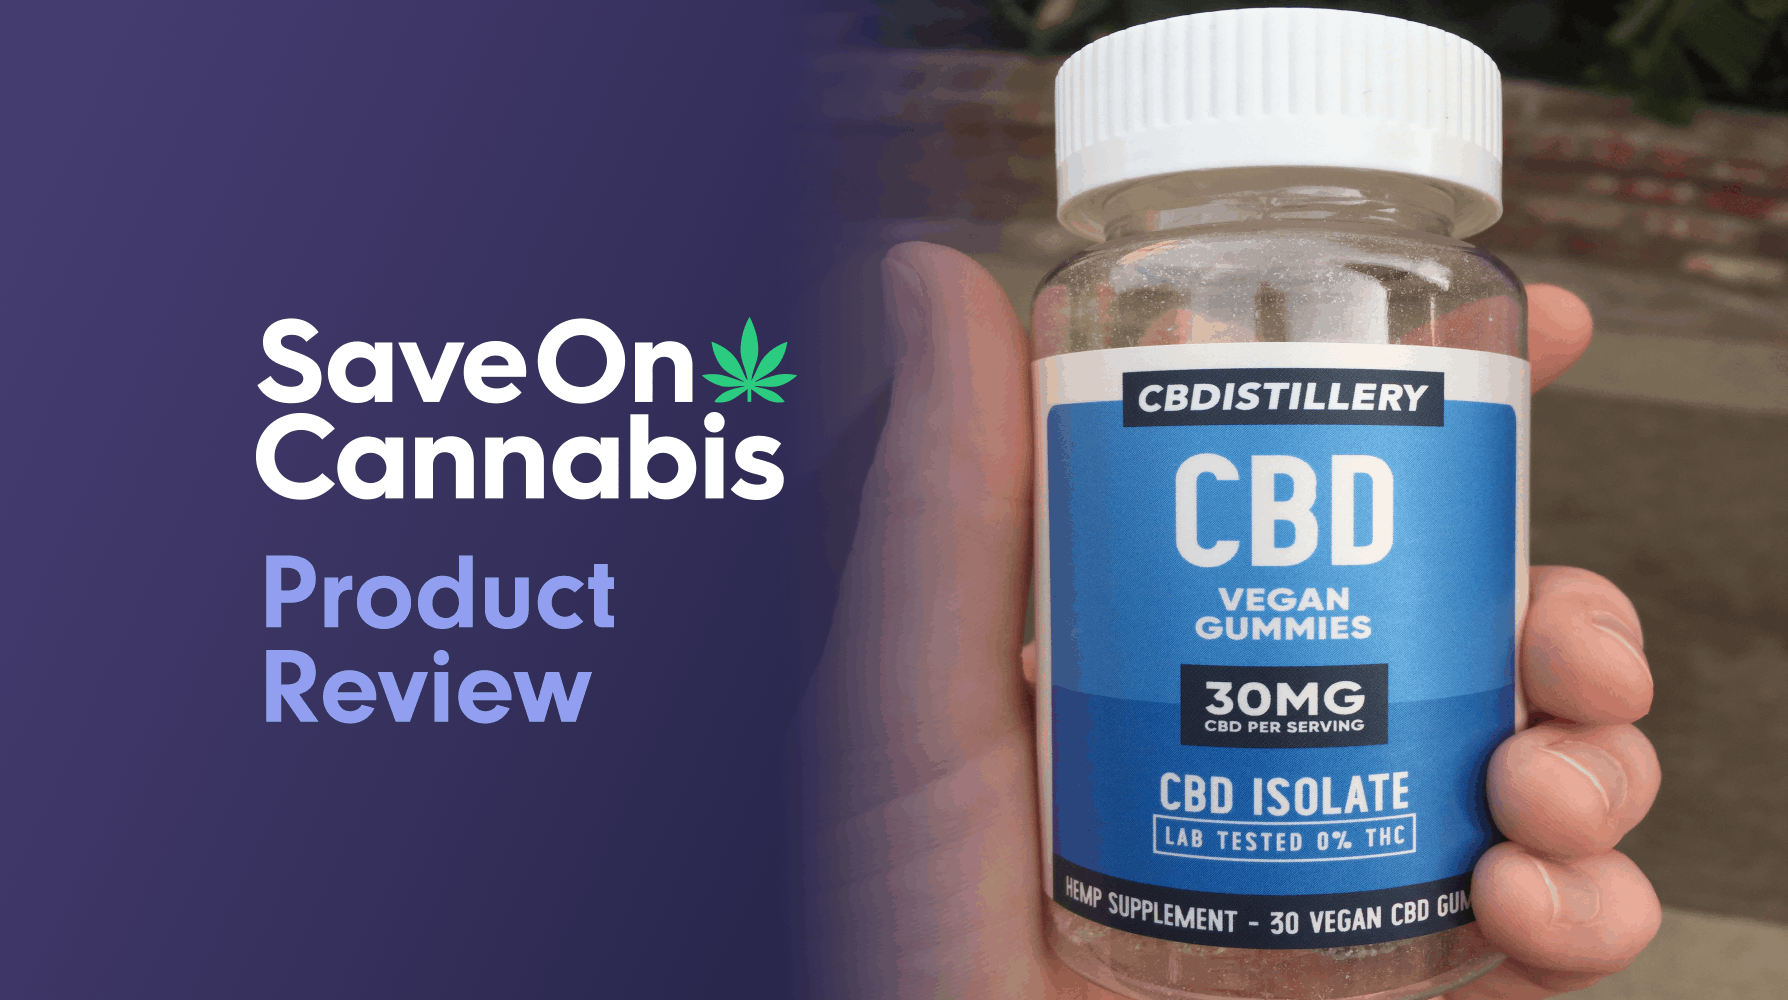 cbdistillery cbd isolate vegan save on cannabis website